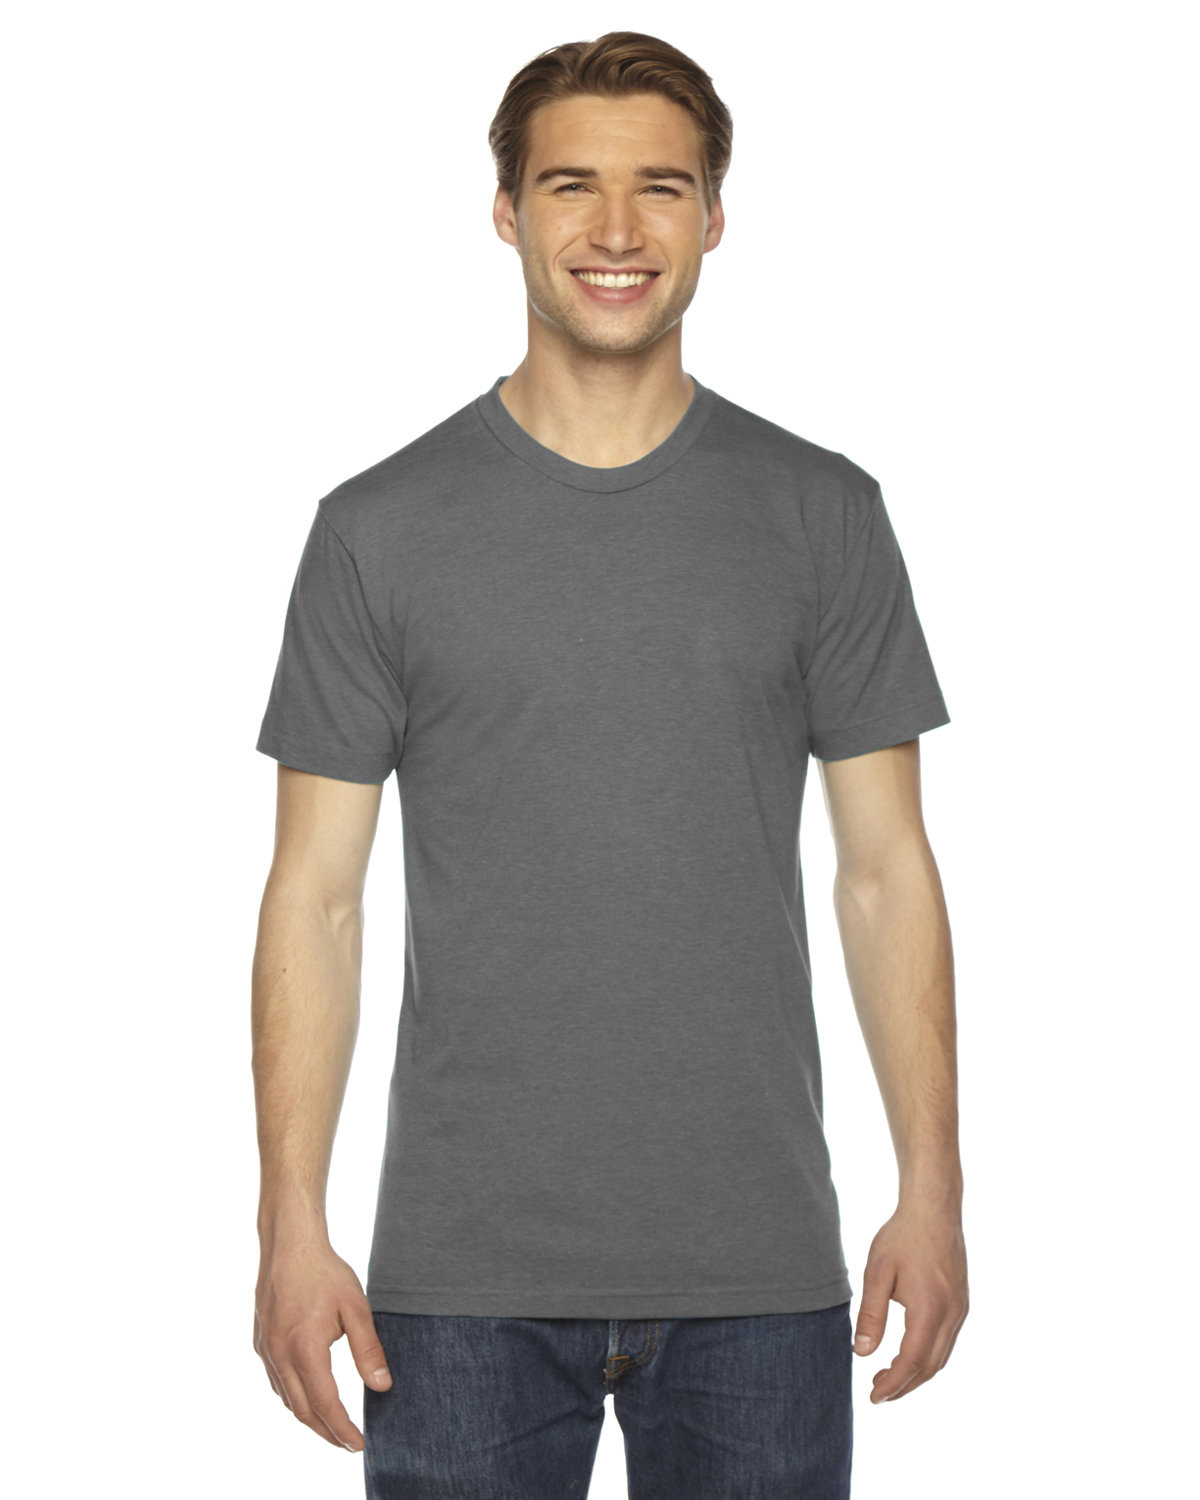 American Apparel Unisex Triblend USA Made Short-Sleeve Track T-Shirt ATHLETIC GREY